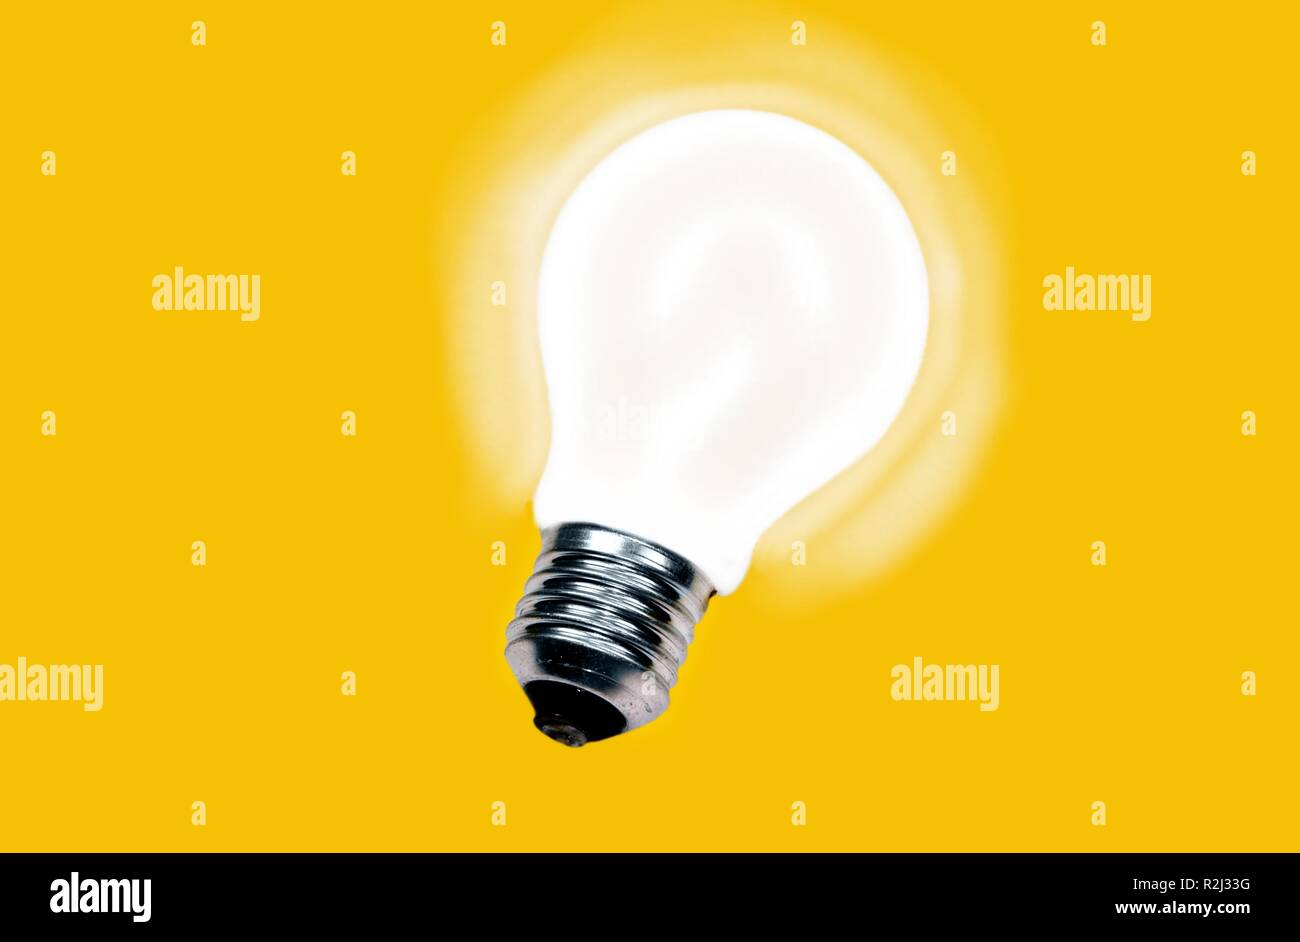 1000 watts Stock Photo